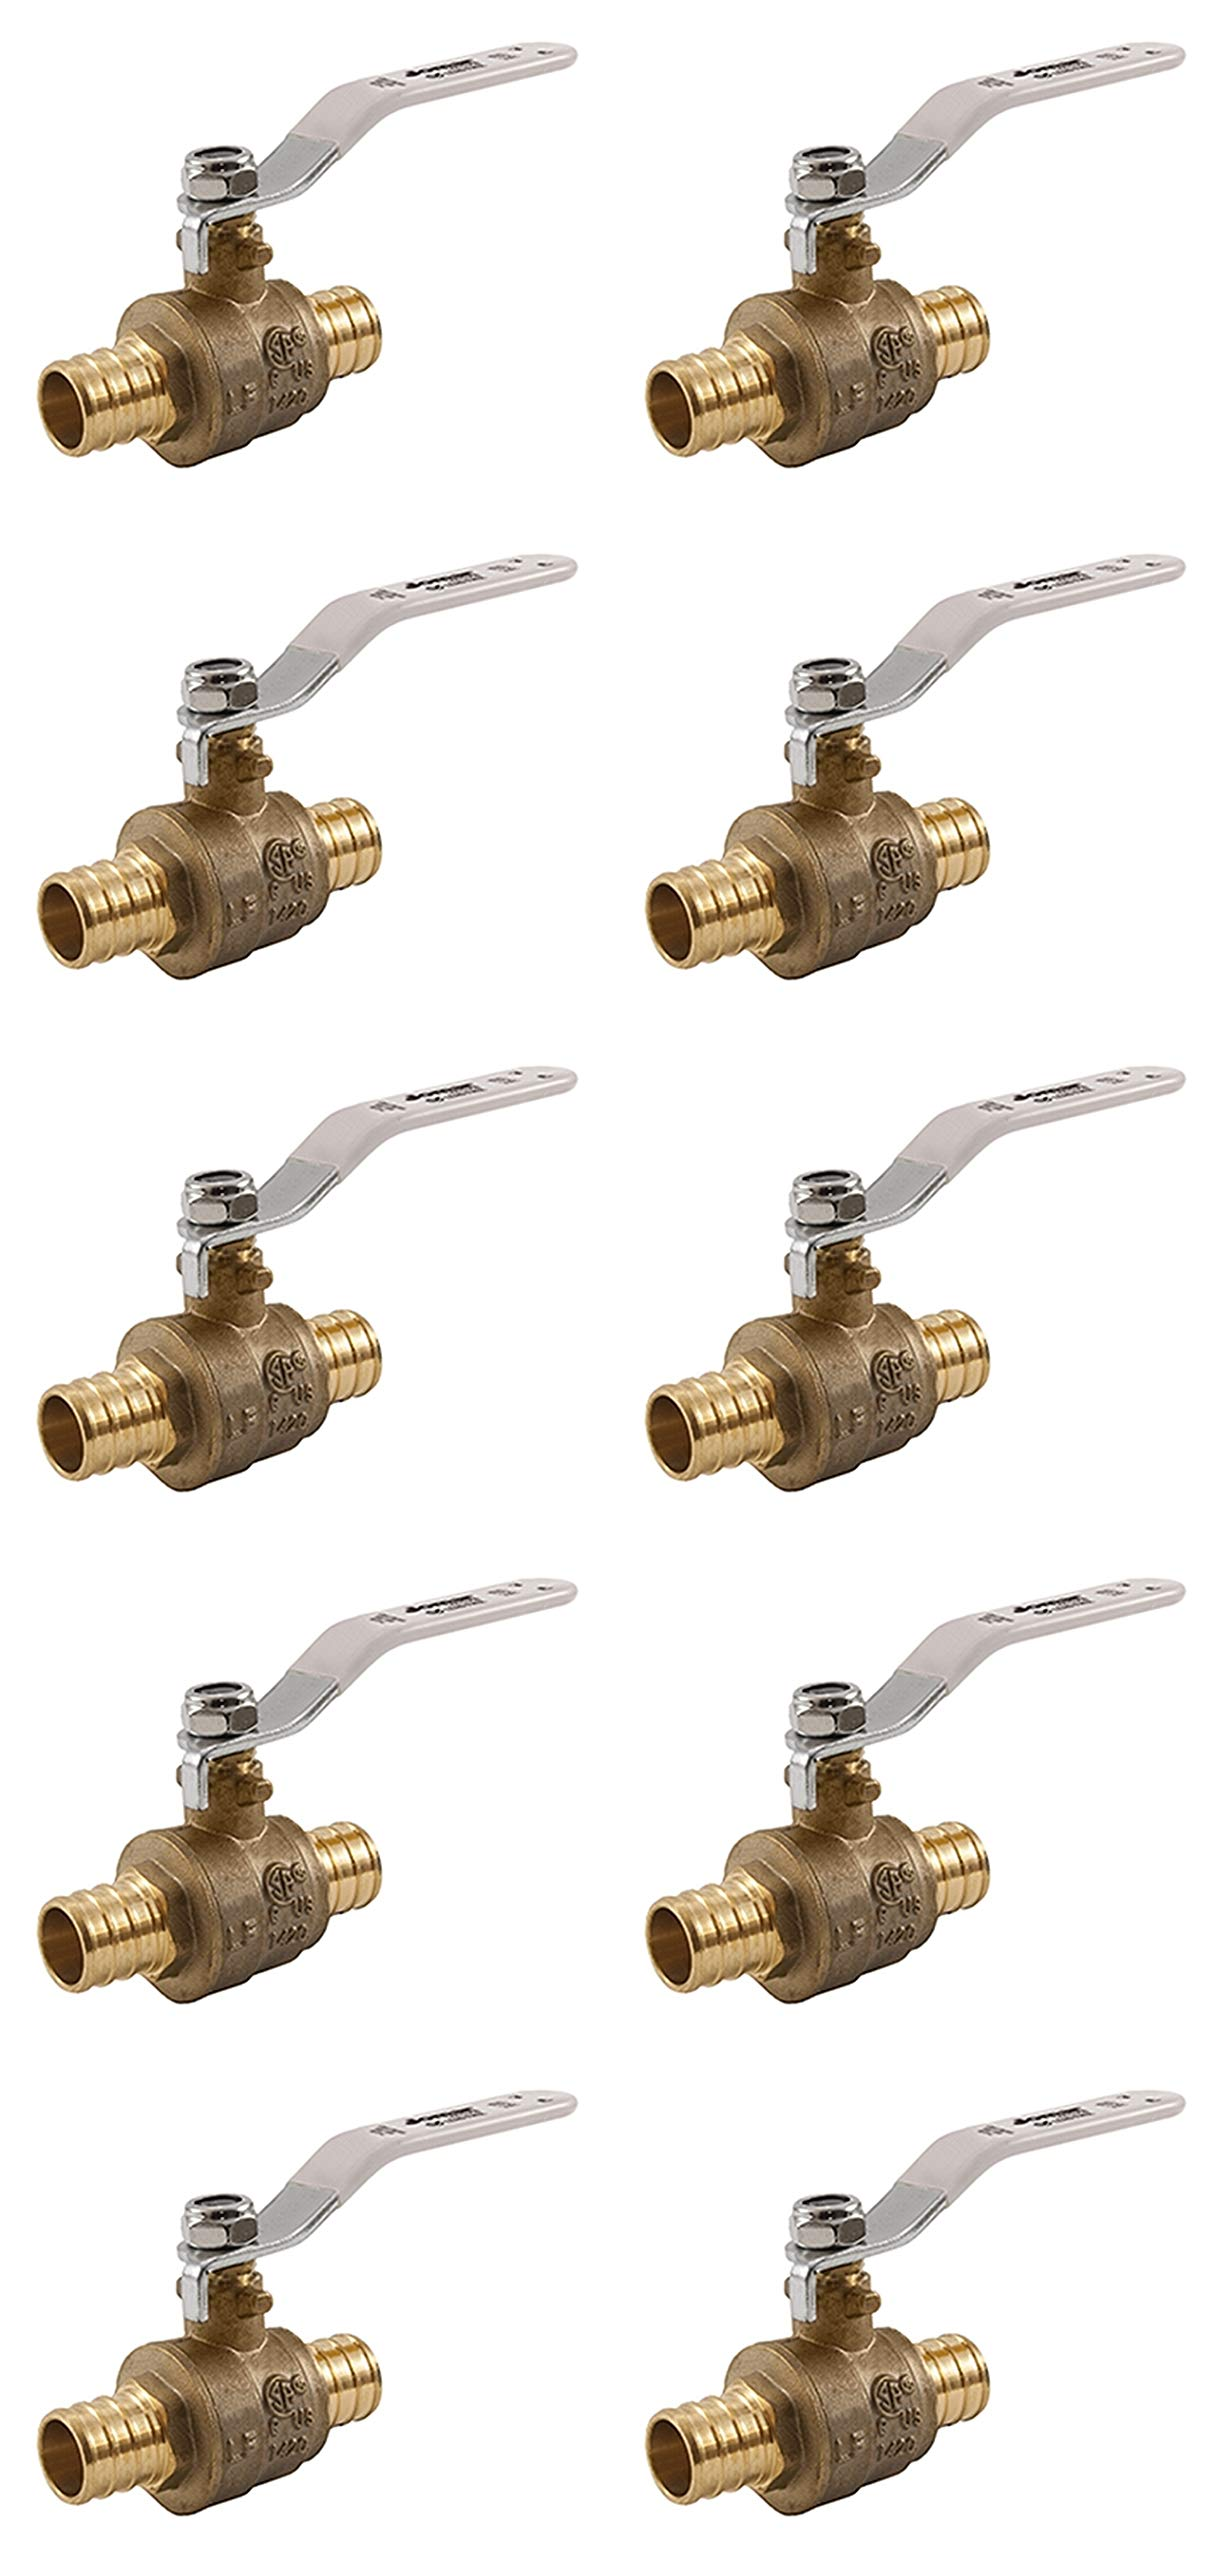 (Pack of 10) 1/2'' PEX Brass Ball Valve-Jomar- Full Port- Standard Crimp Ends-Lead Free- 2 Piece Design, Leak Tested, Heavy Duty